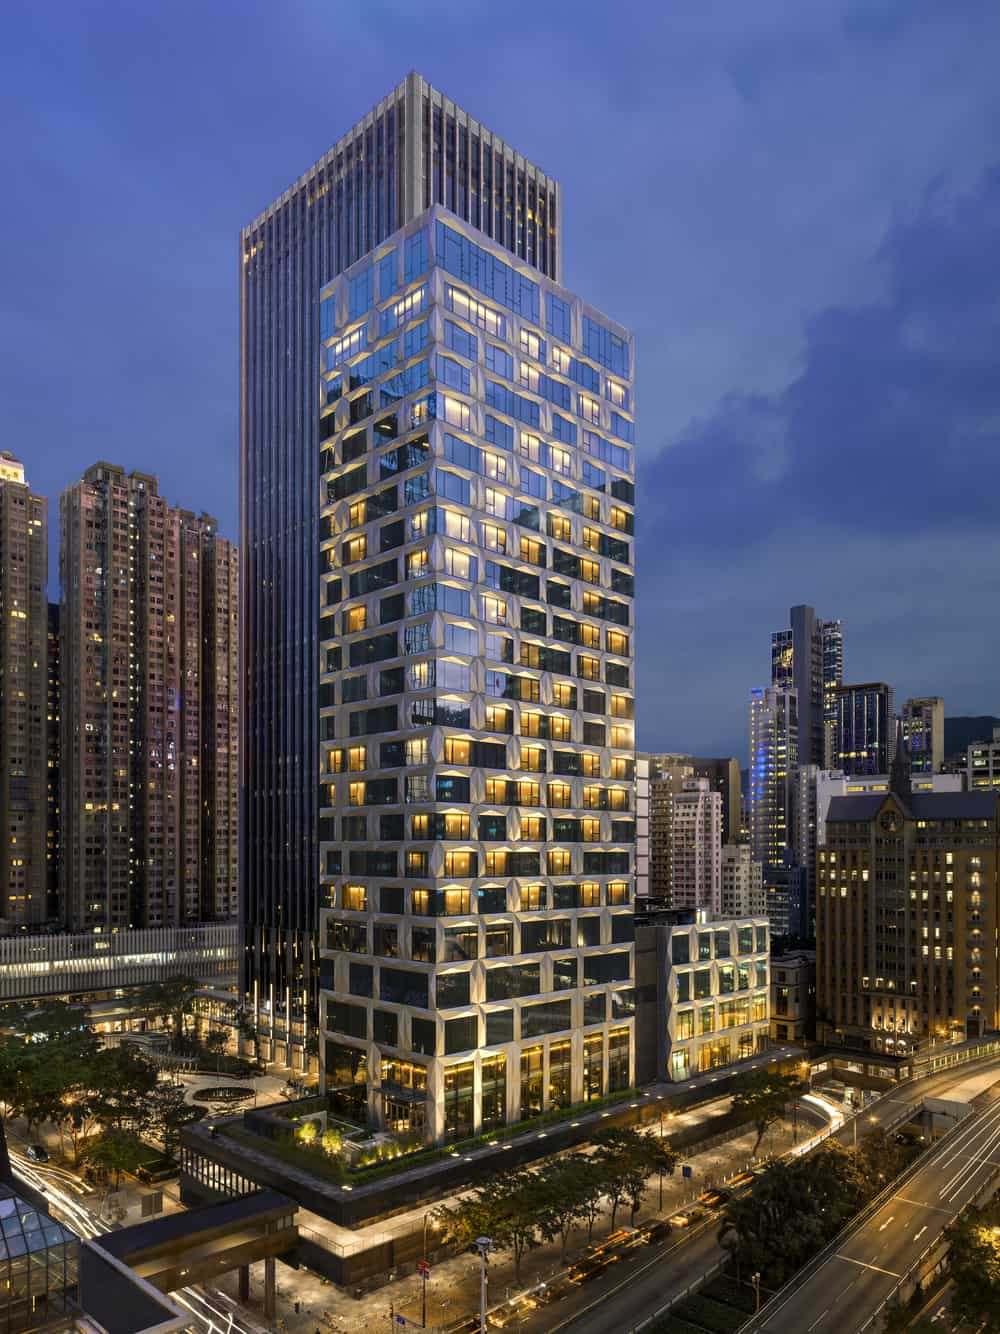 Hotel St. Regis Hong Kong Buka April 2019